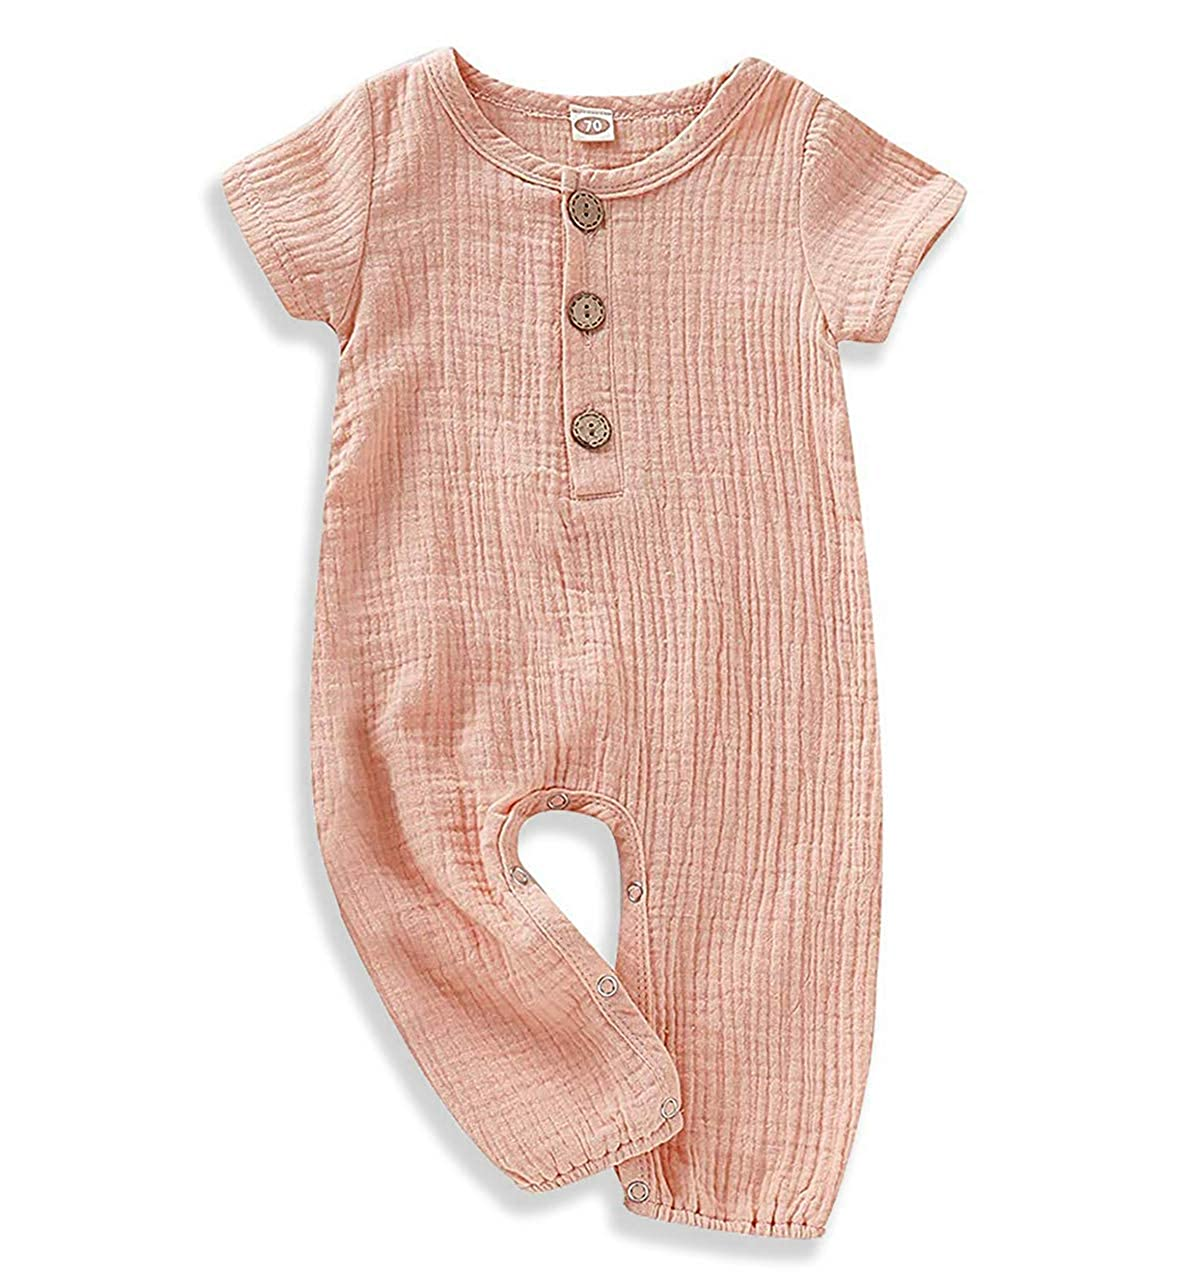 YOUNGER TREE Newborn Toddler Baby Jumpsuit One Piece Outfits Baby Solid Color Rompers Linen Cotton Playsuit Bodysuit Clothing